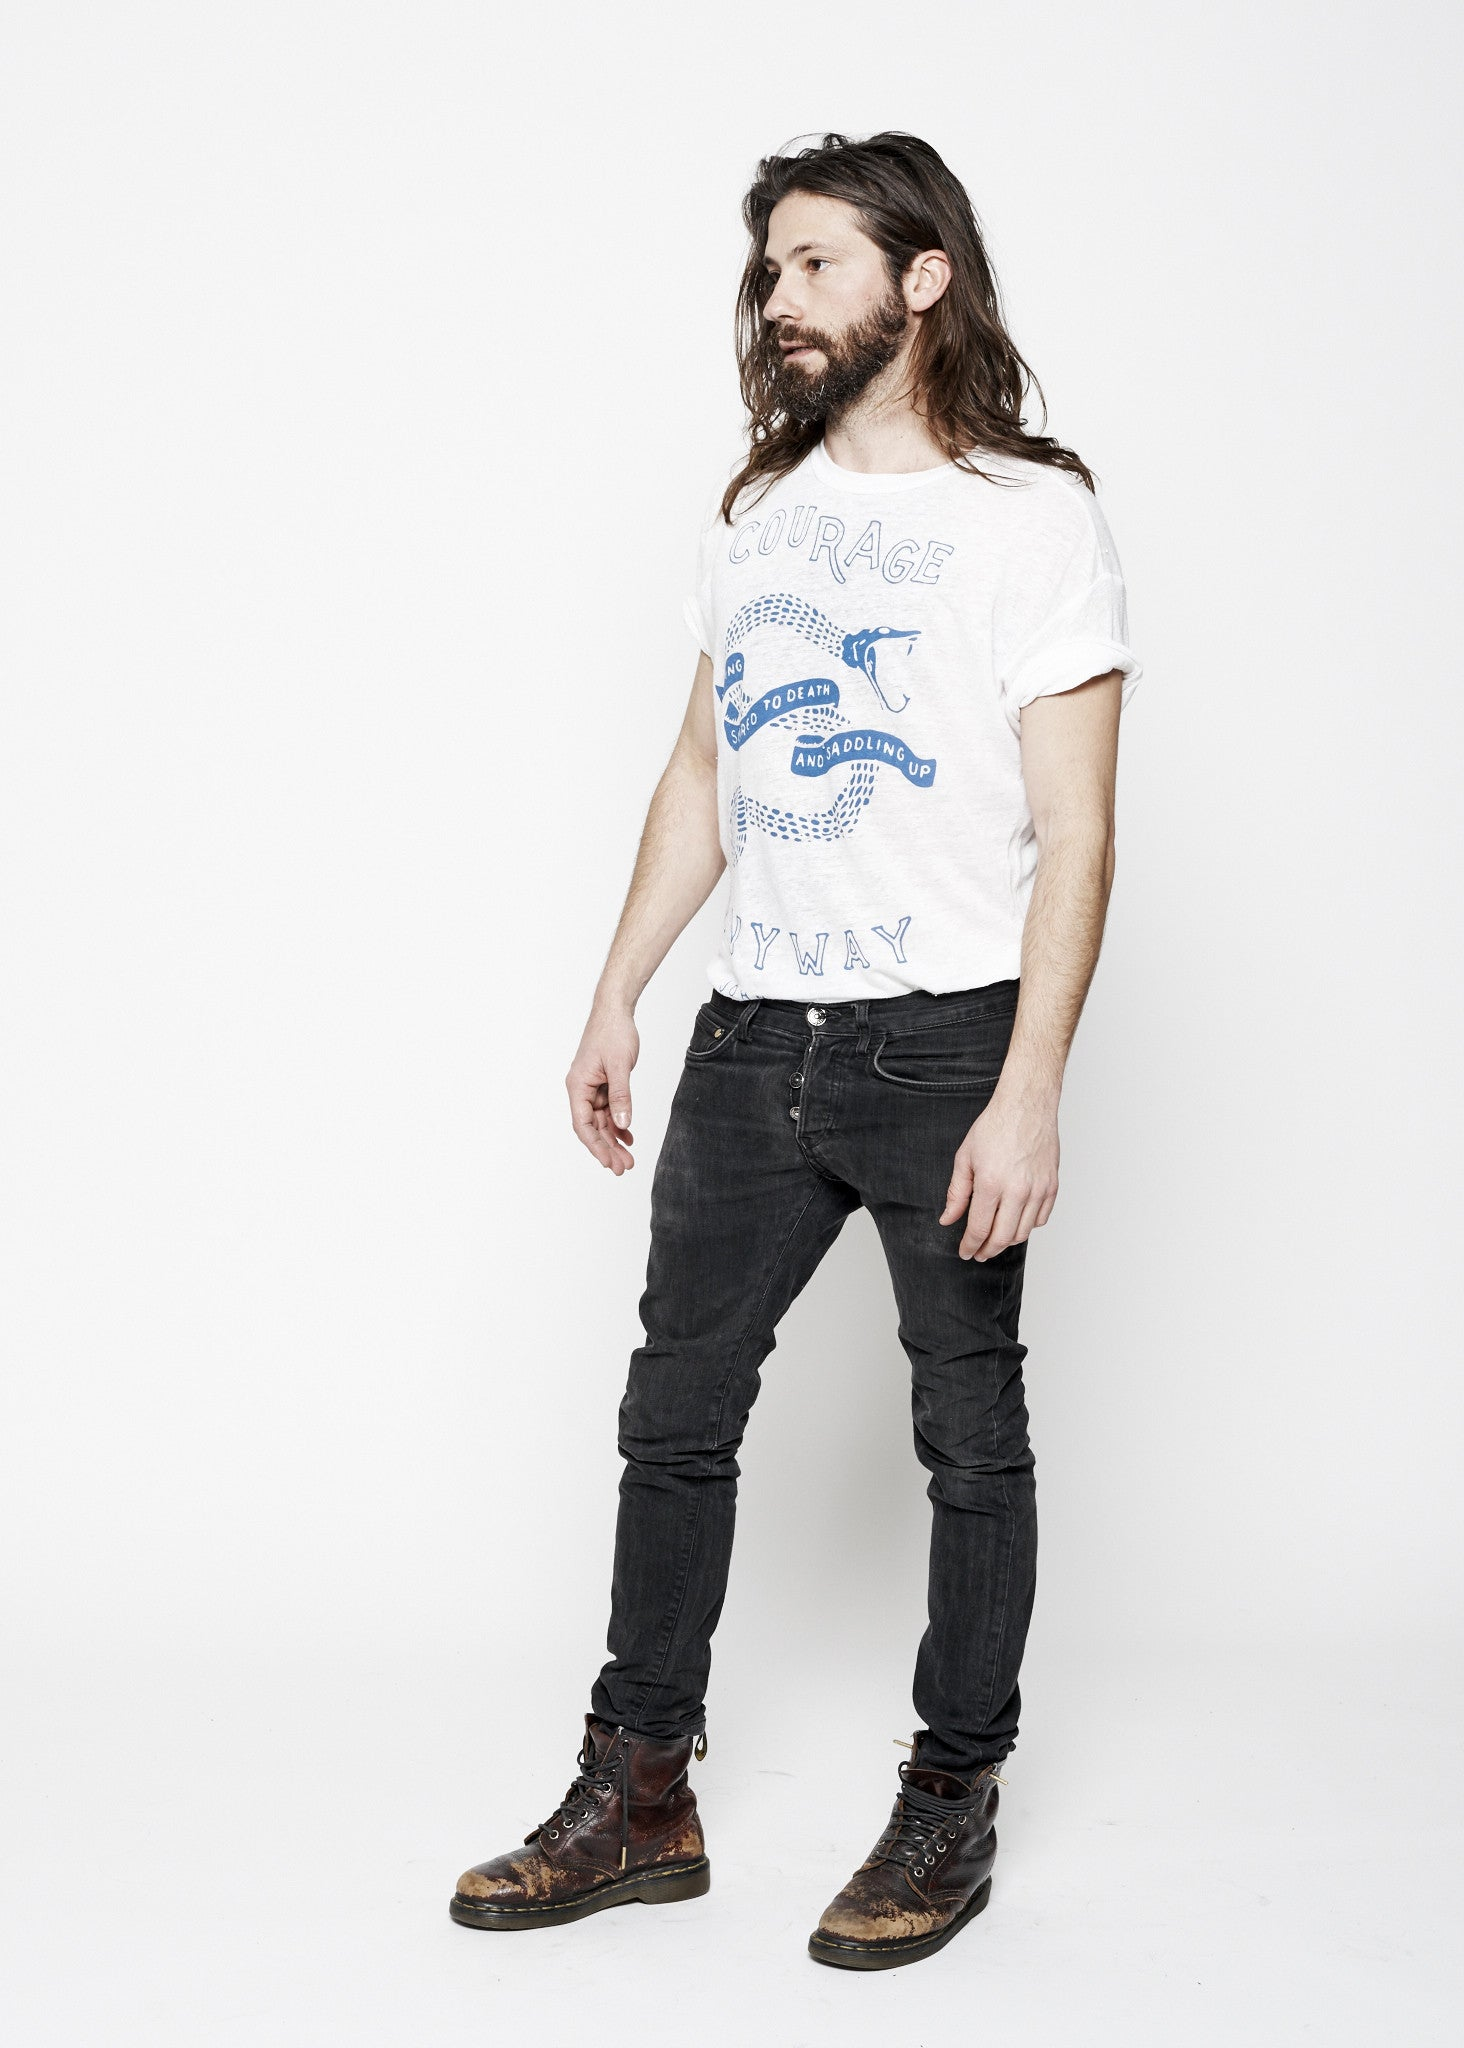 Courage Linen Men's Crew - Bright White - Linen Tee - Midnight Rider